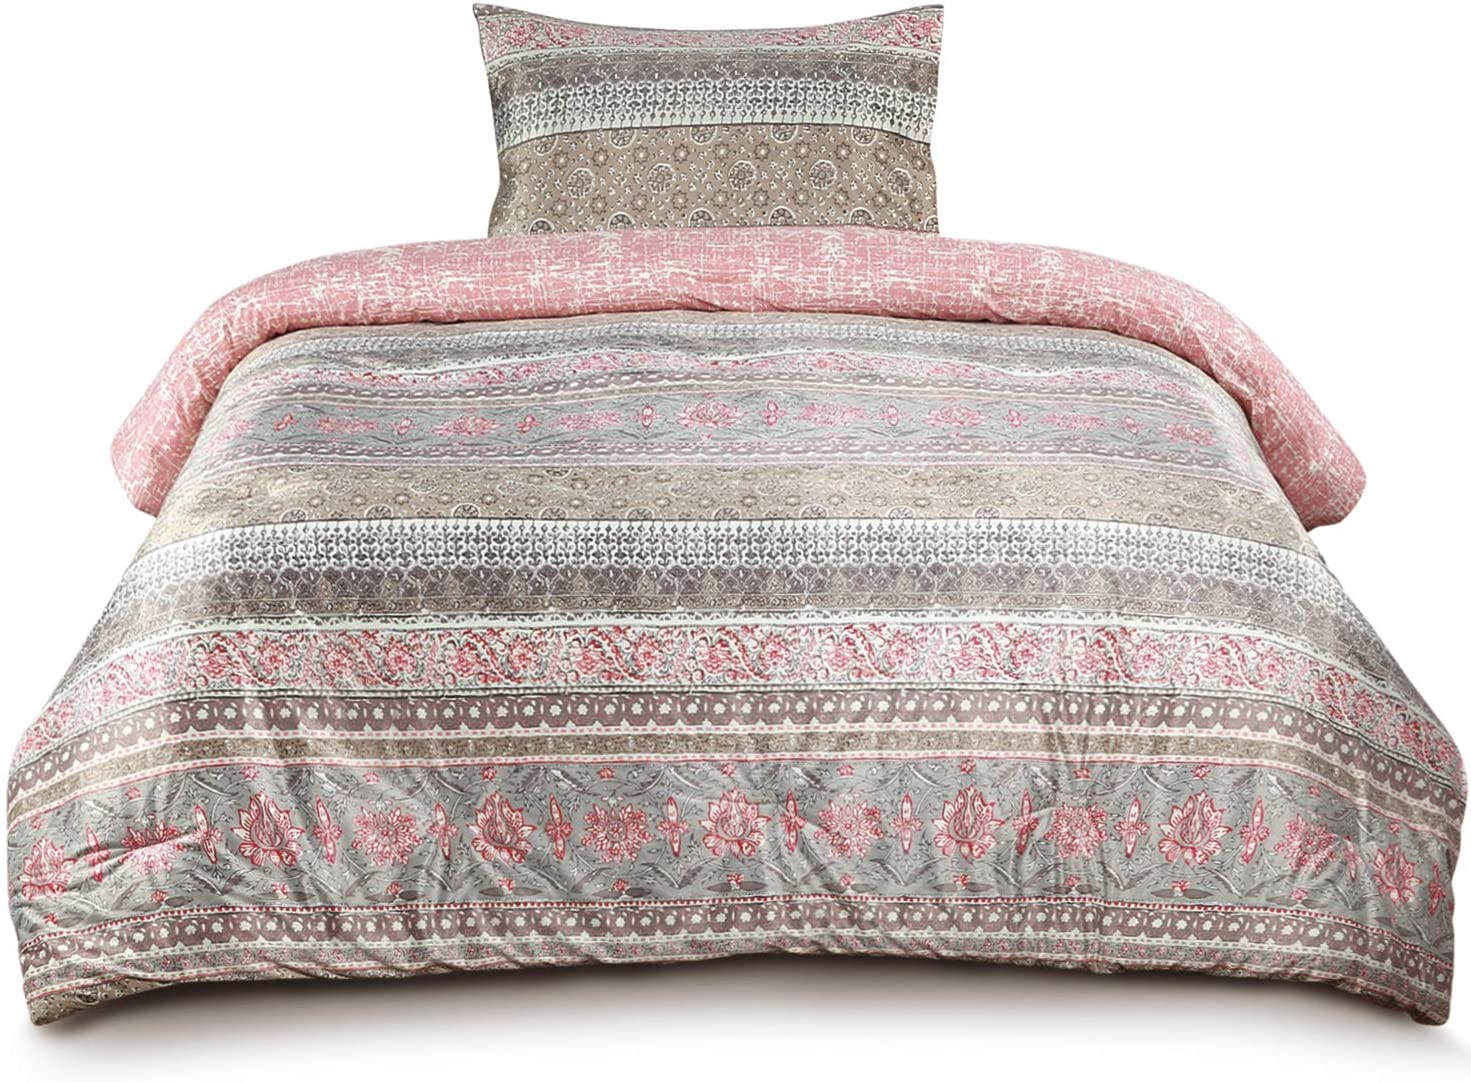 Muk Luks Global Floral Stripe Comforter Set With Mink Front & Matching Shams, Peach & Purple